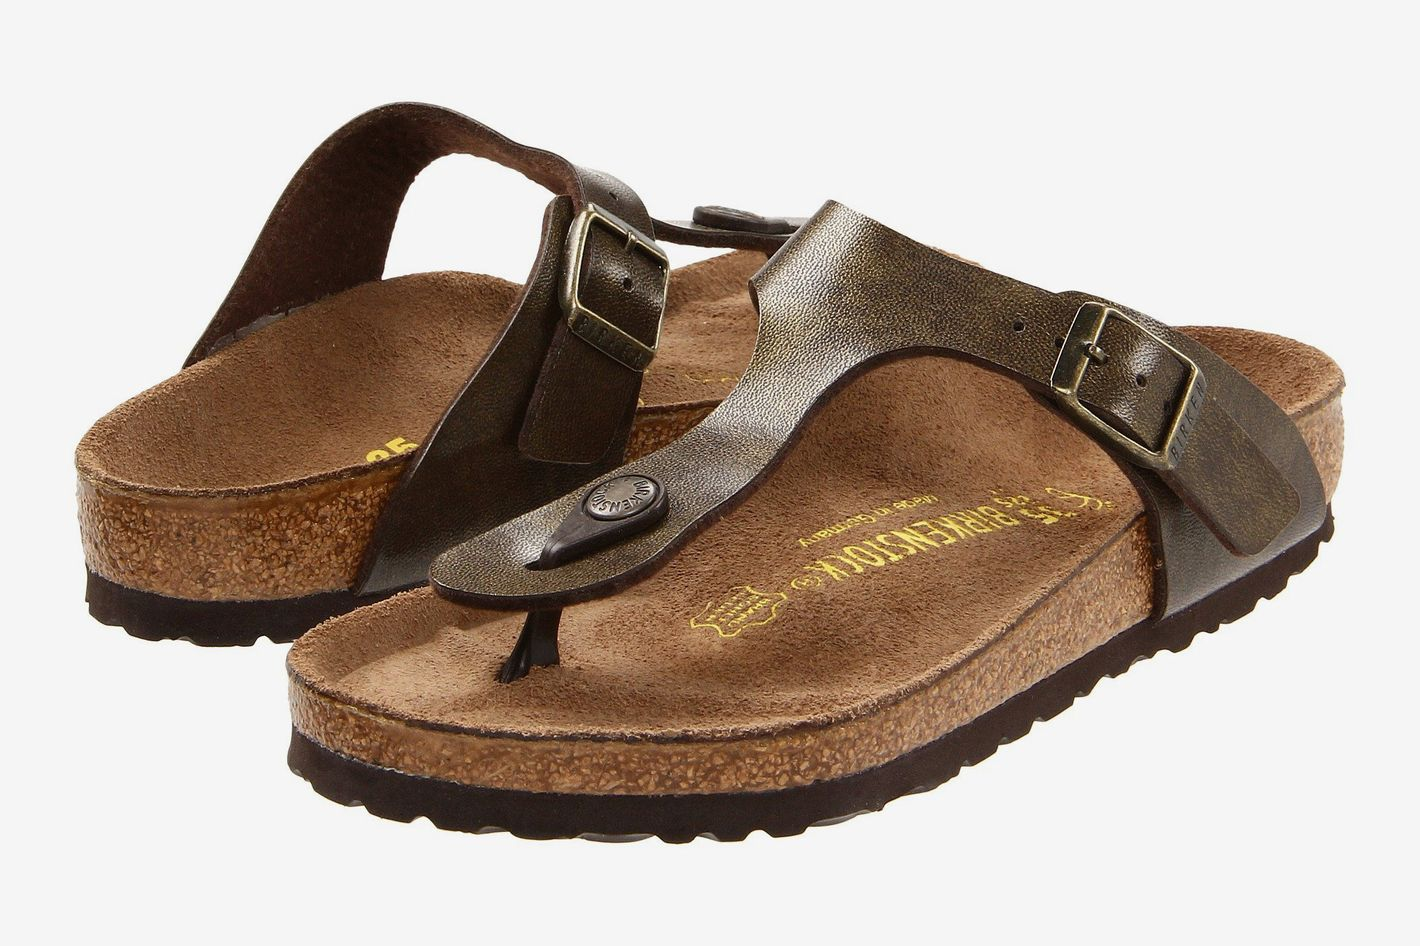 Birkenstock Gizeh Golden Brown